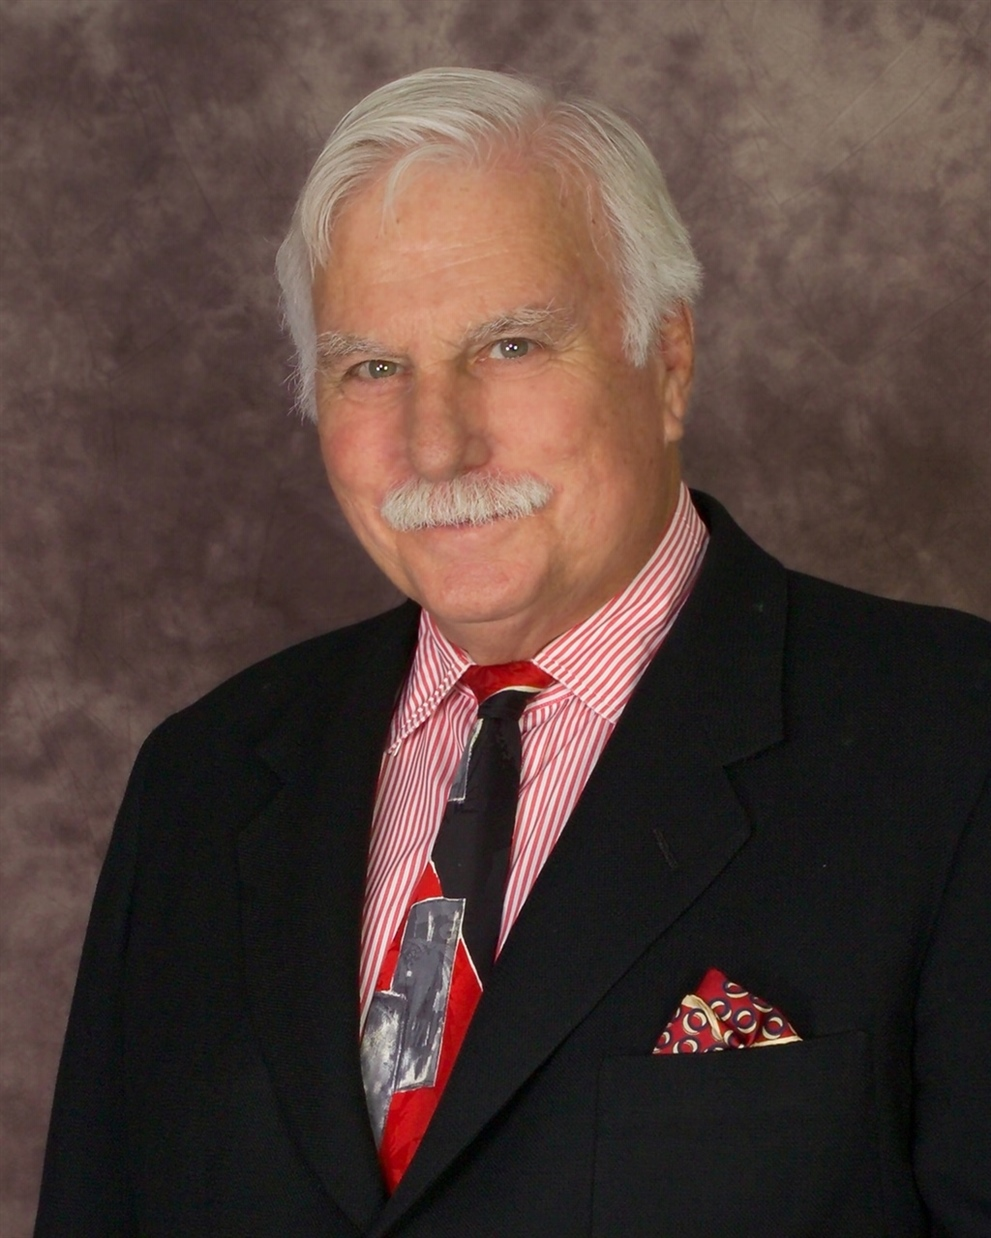 Howard Schnellenberger, in a photo taken when he coached football at Florida Atlantic University. Photo courtesy of the school.